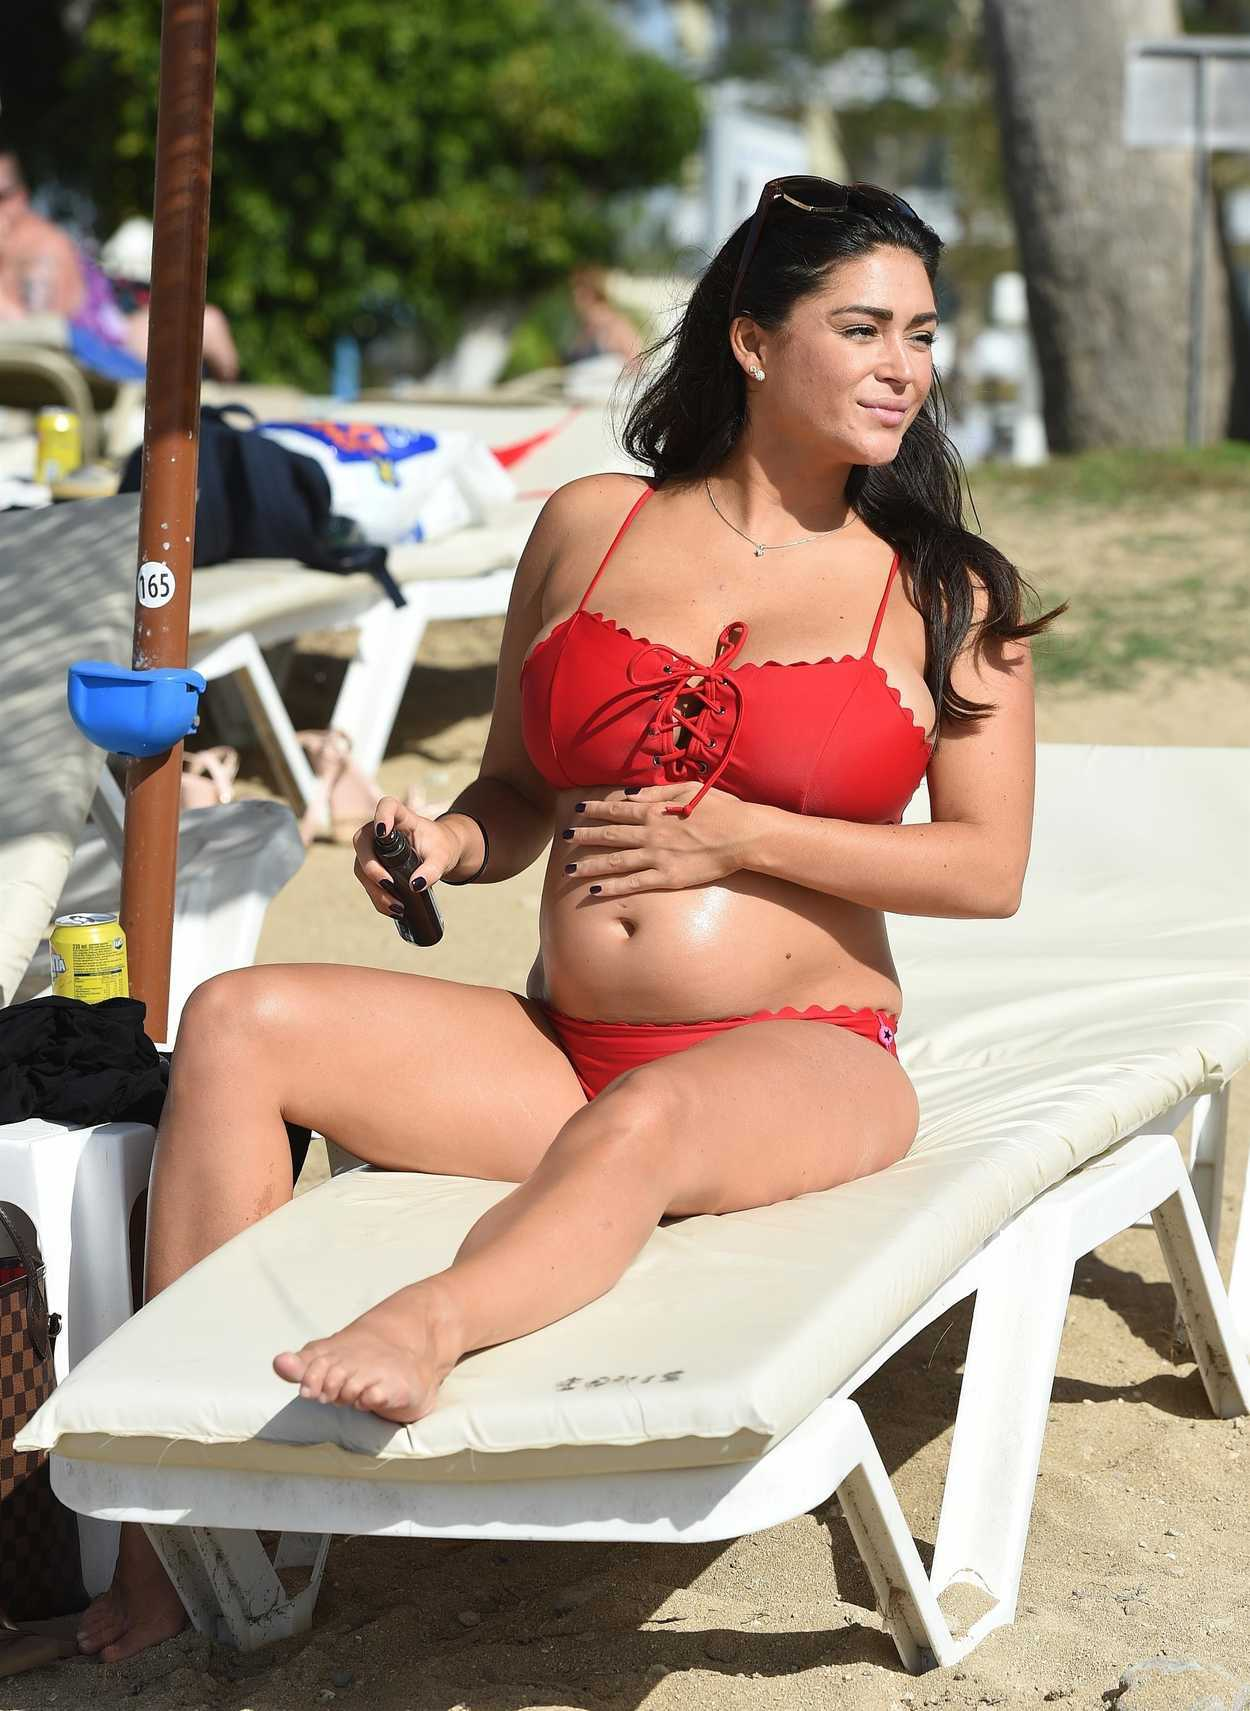 Casey Batchelor in a Bikini on the pool in Lanzarote Pic 2 of 35